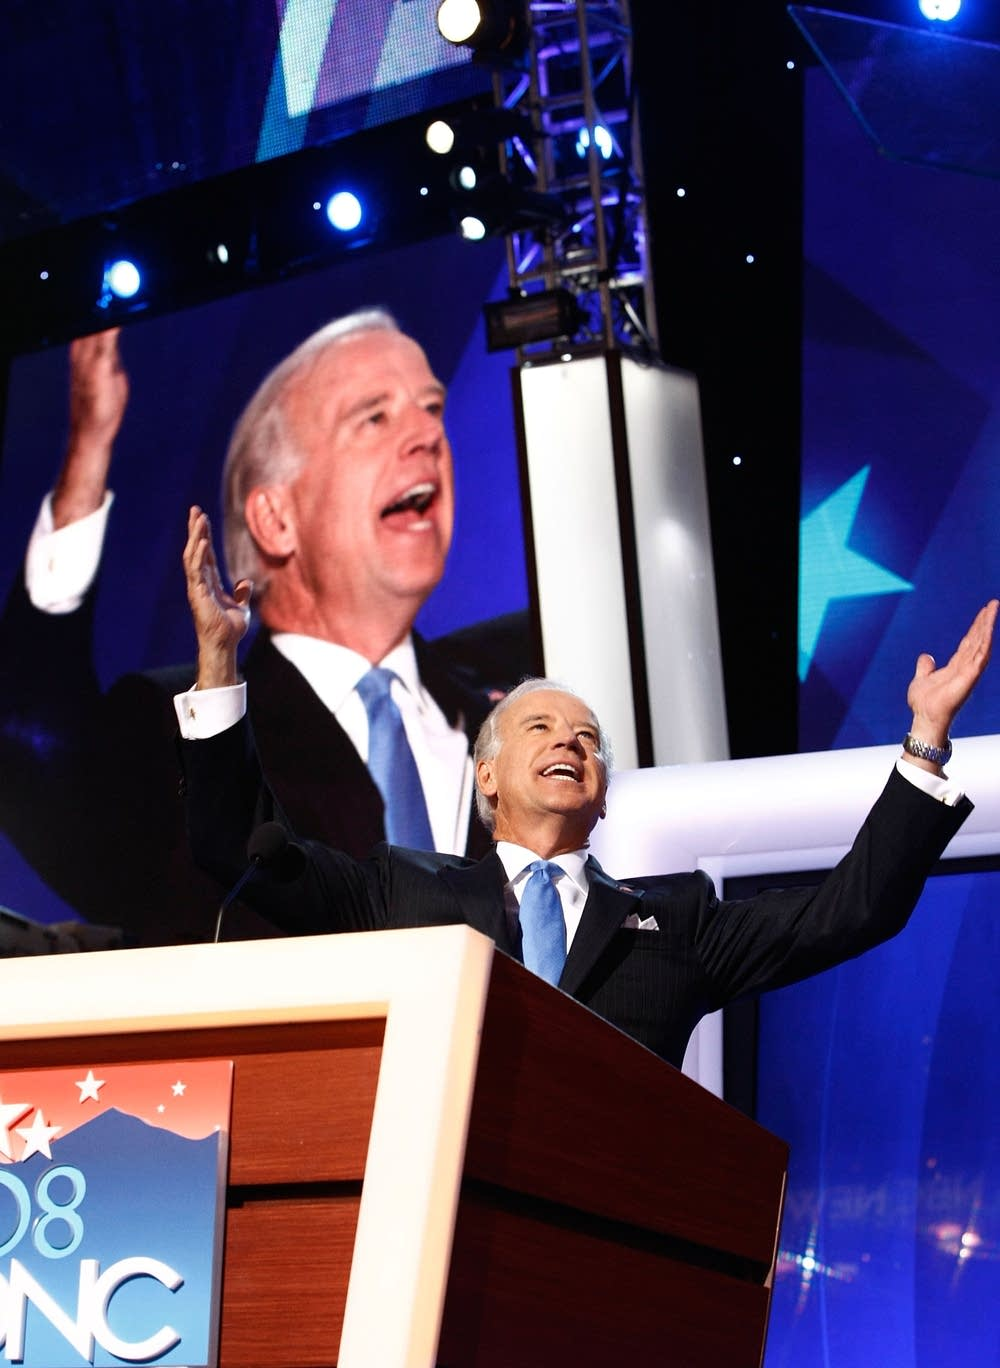 Joe Biden cheers delegates at the DNC